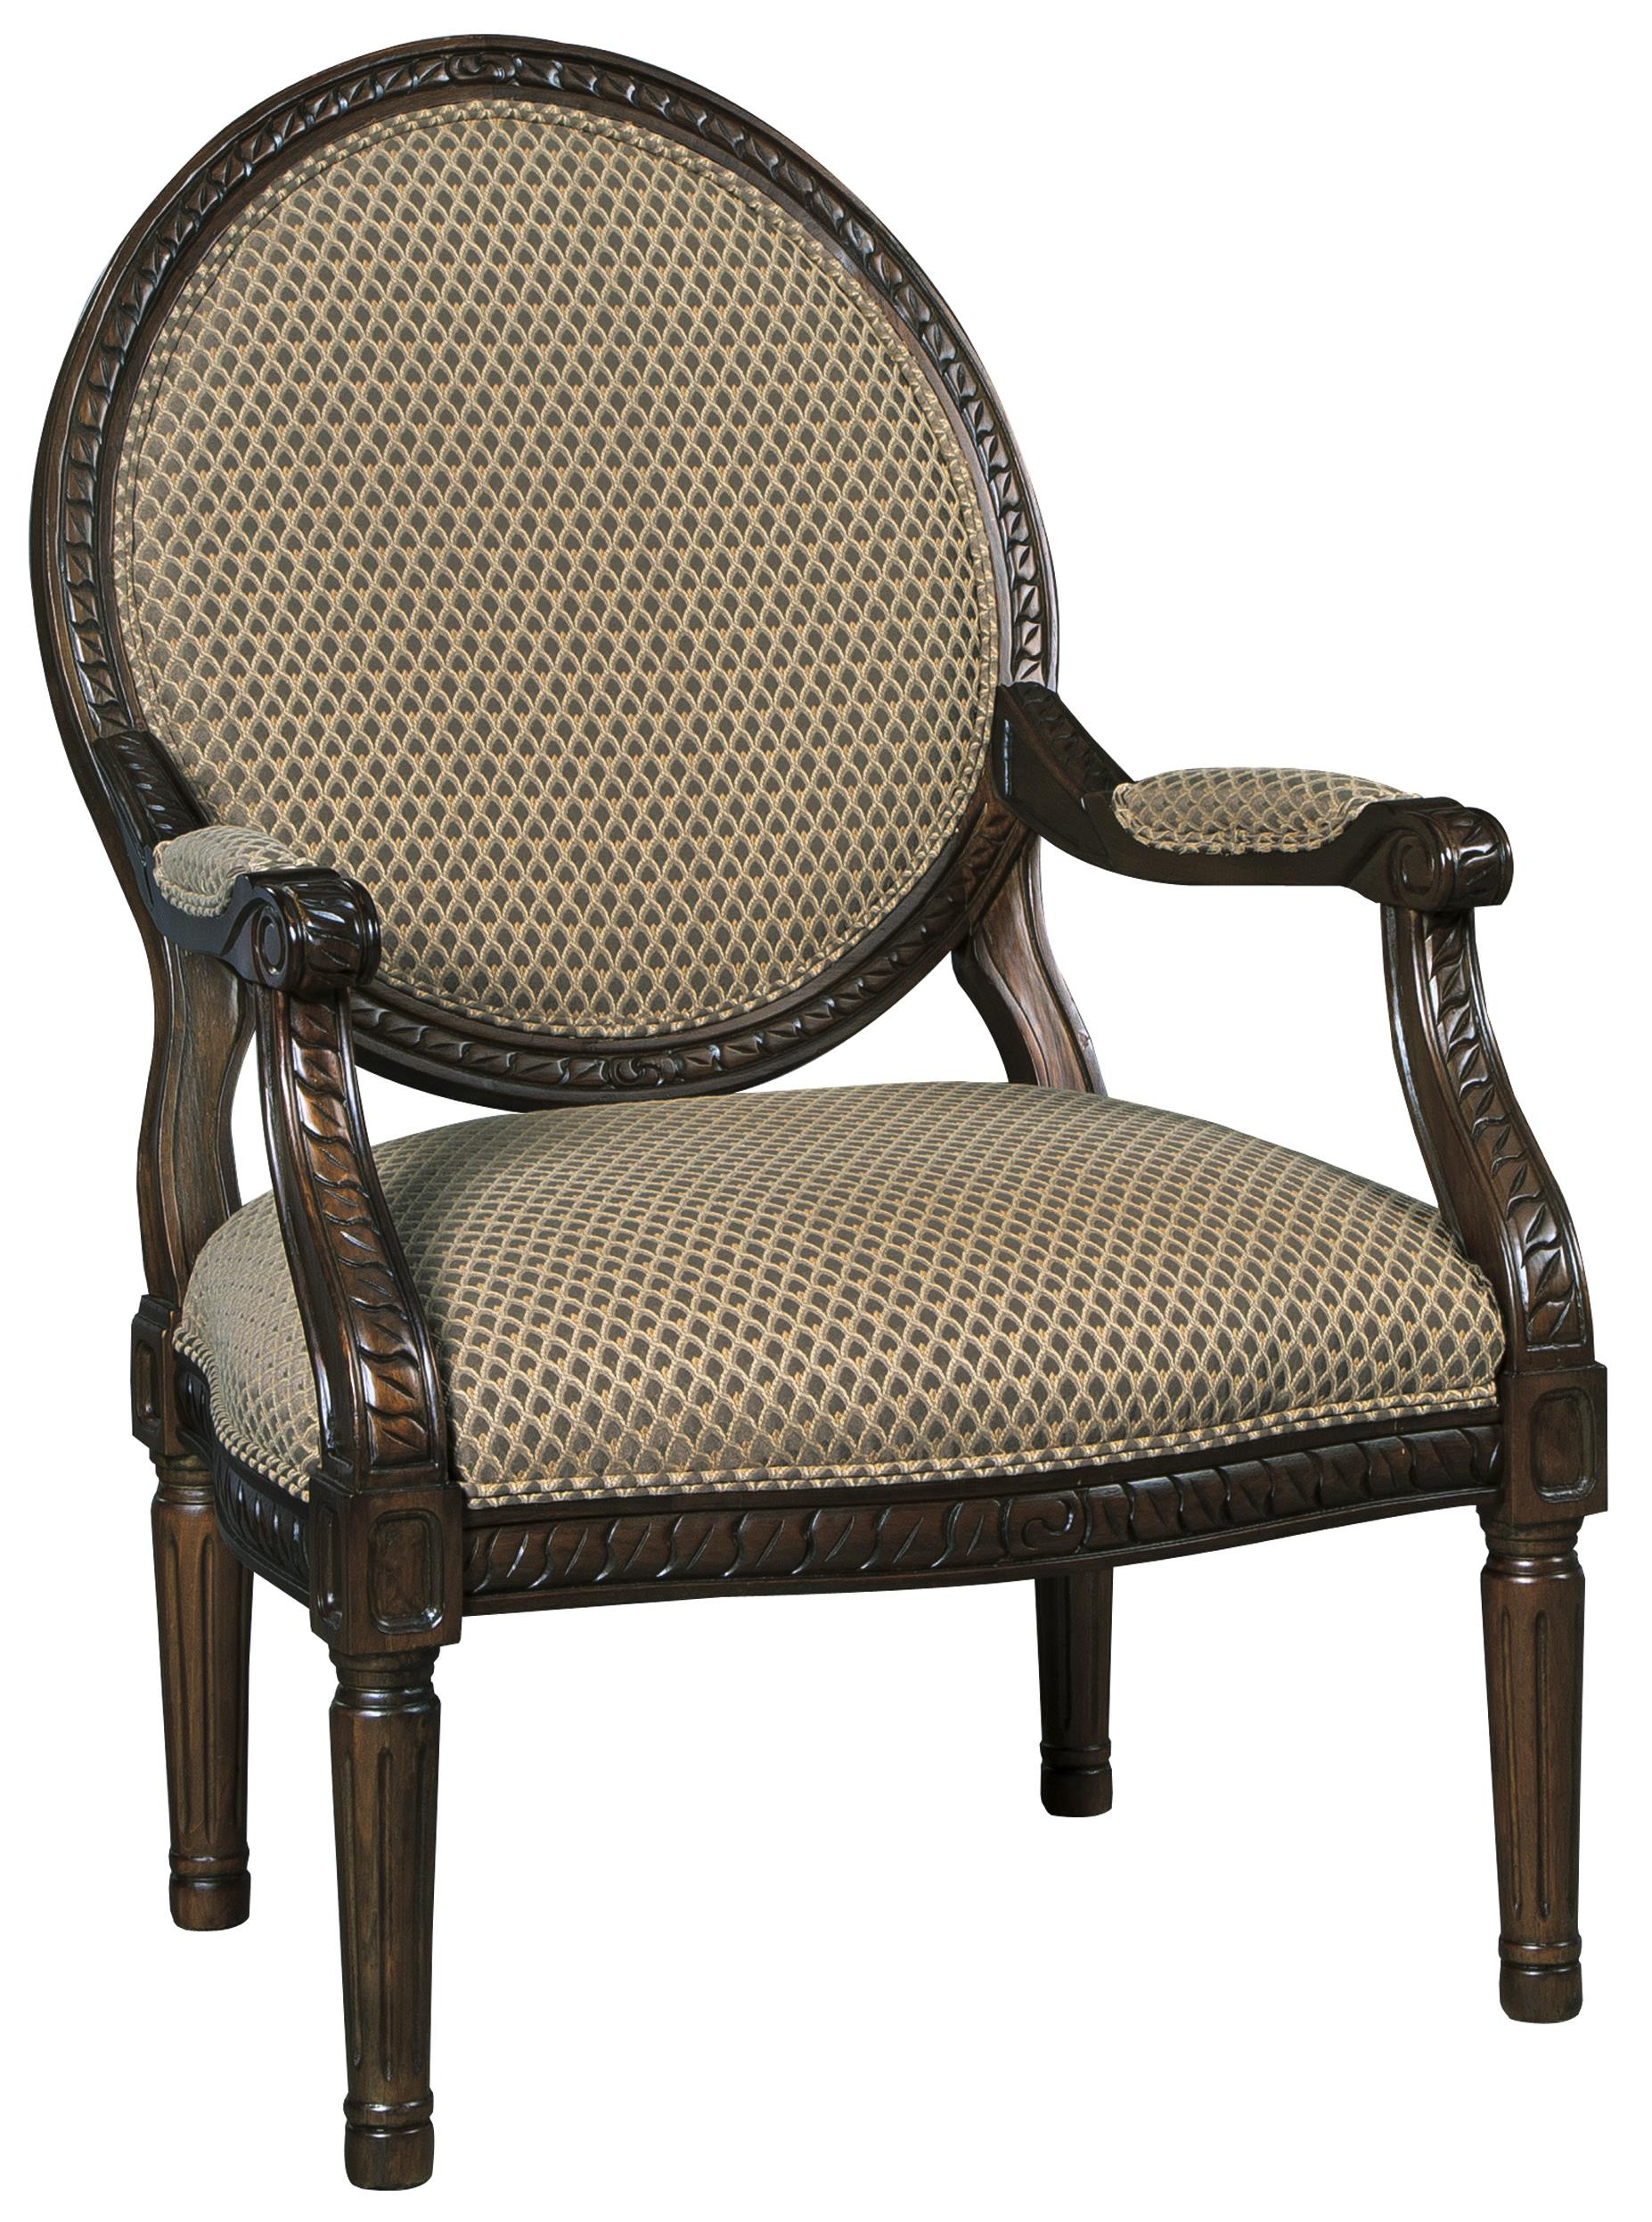 Signature Design by Ashley Irwindale Accent Chair - Item Number: 8840460